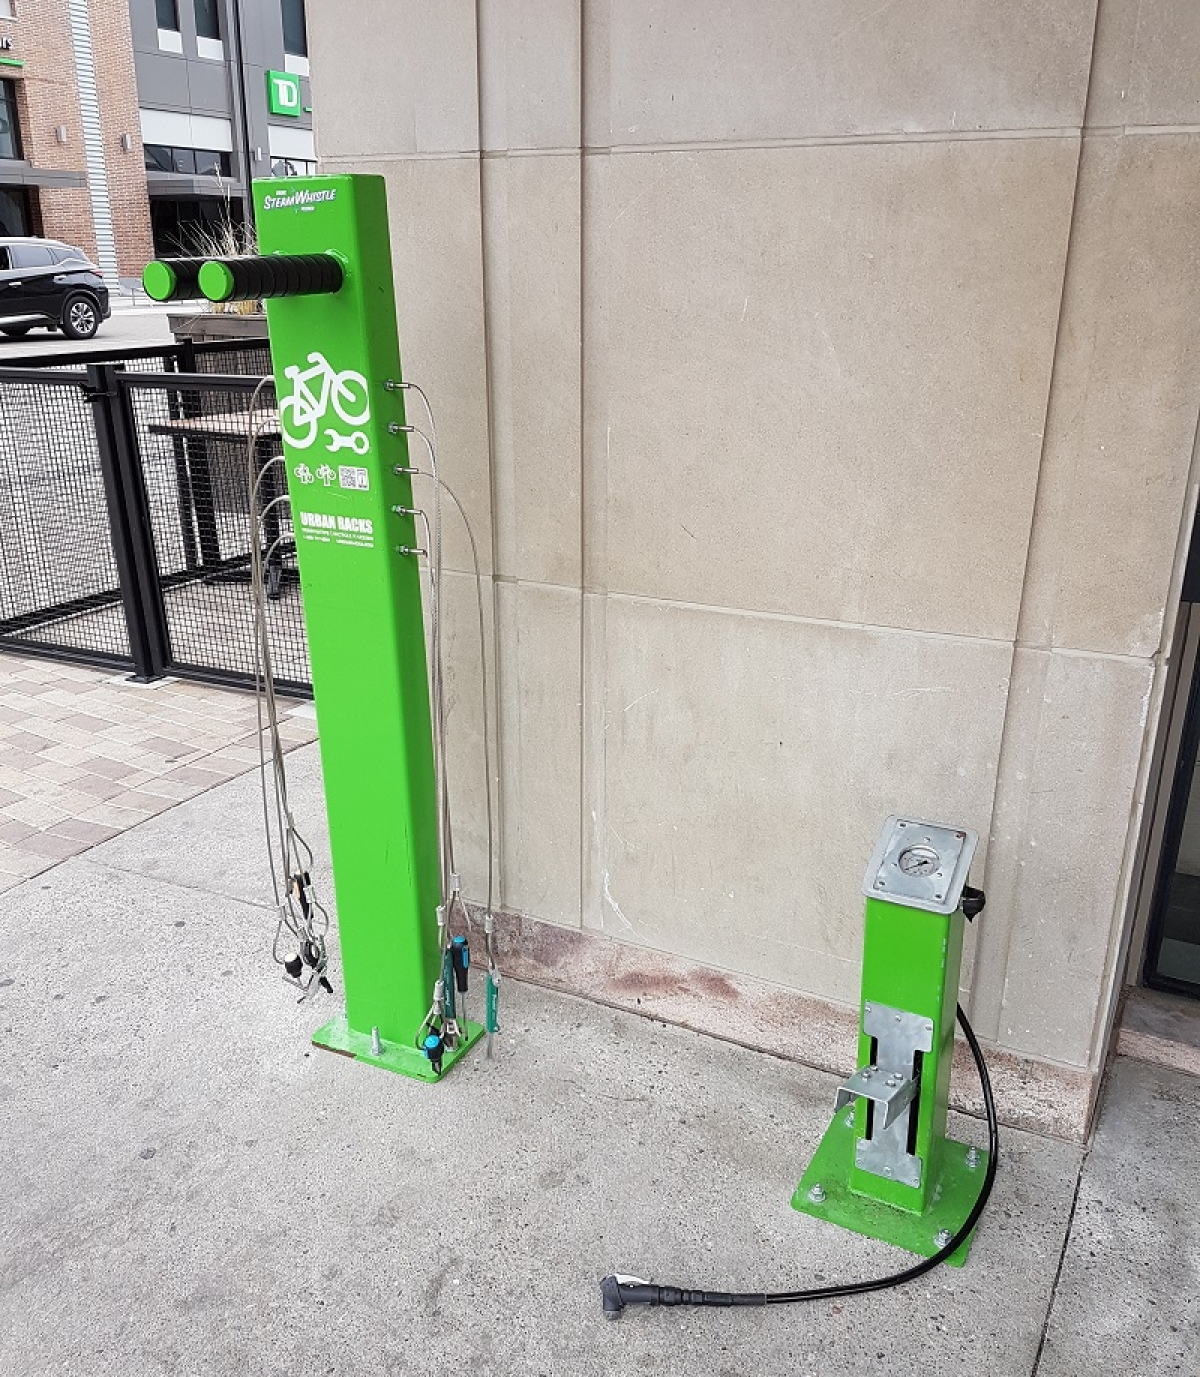 Nearby Bike Repair Station